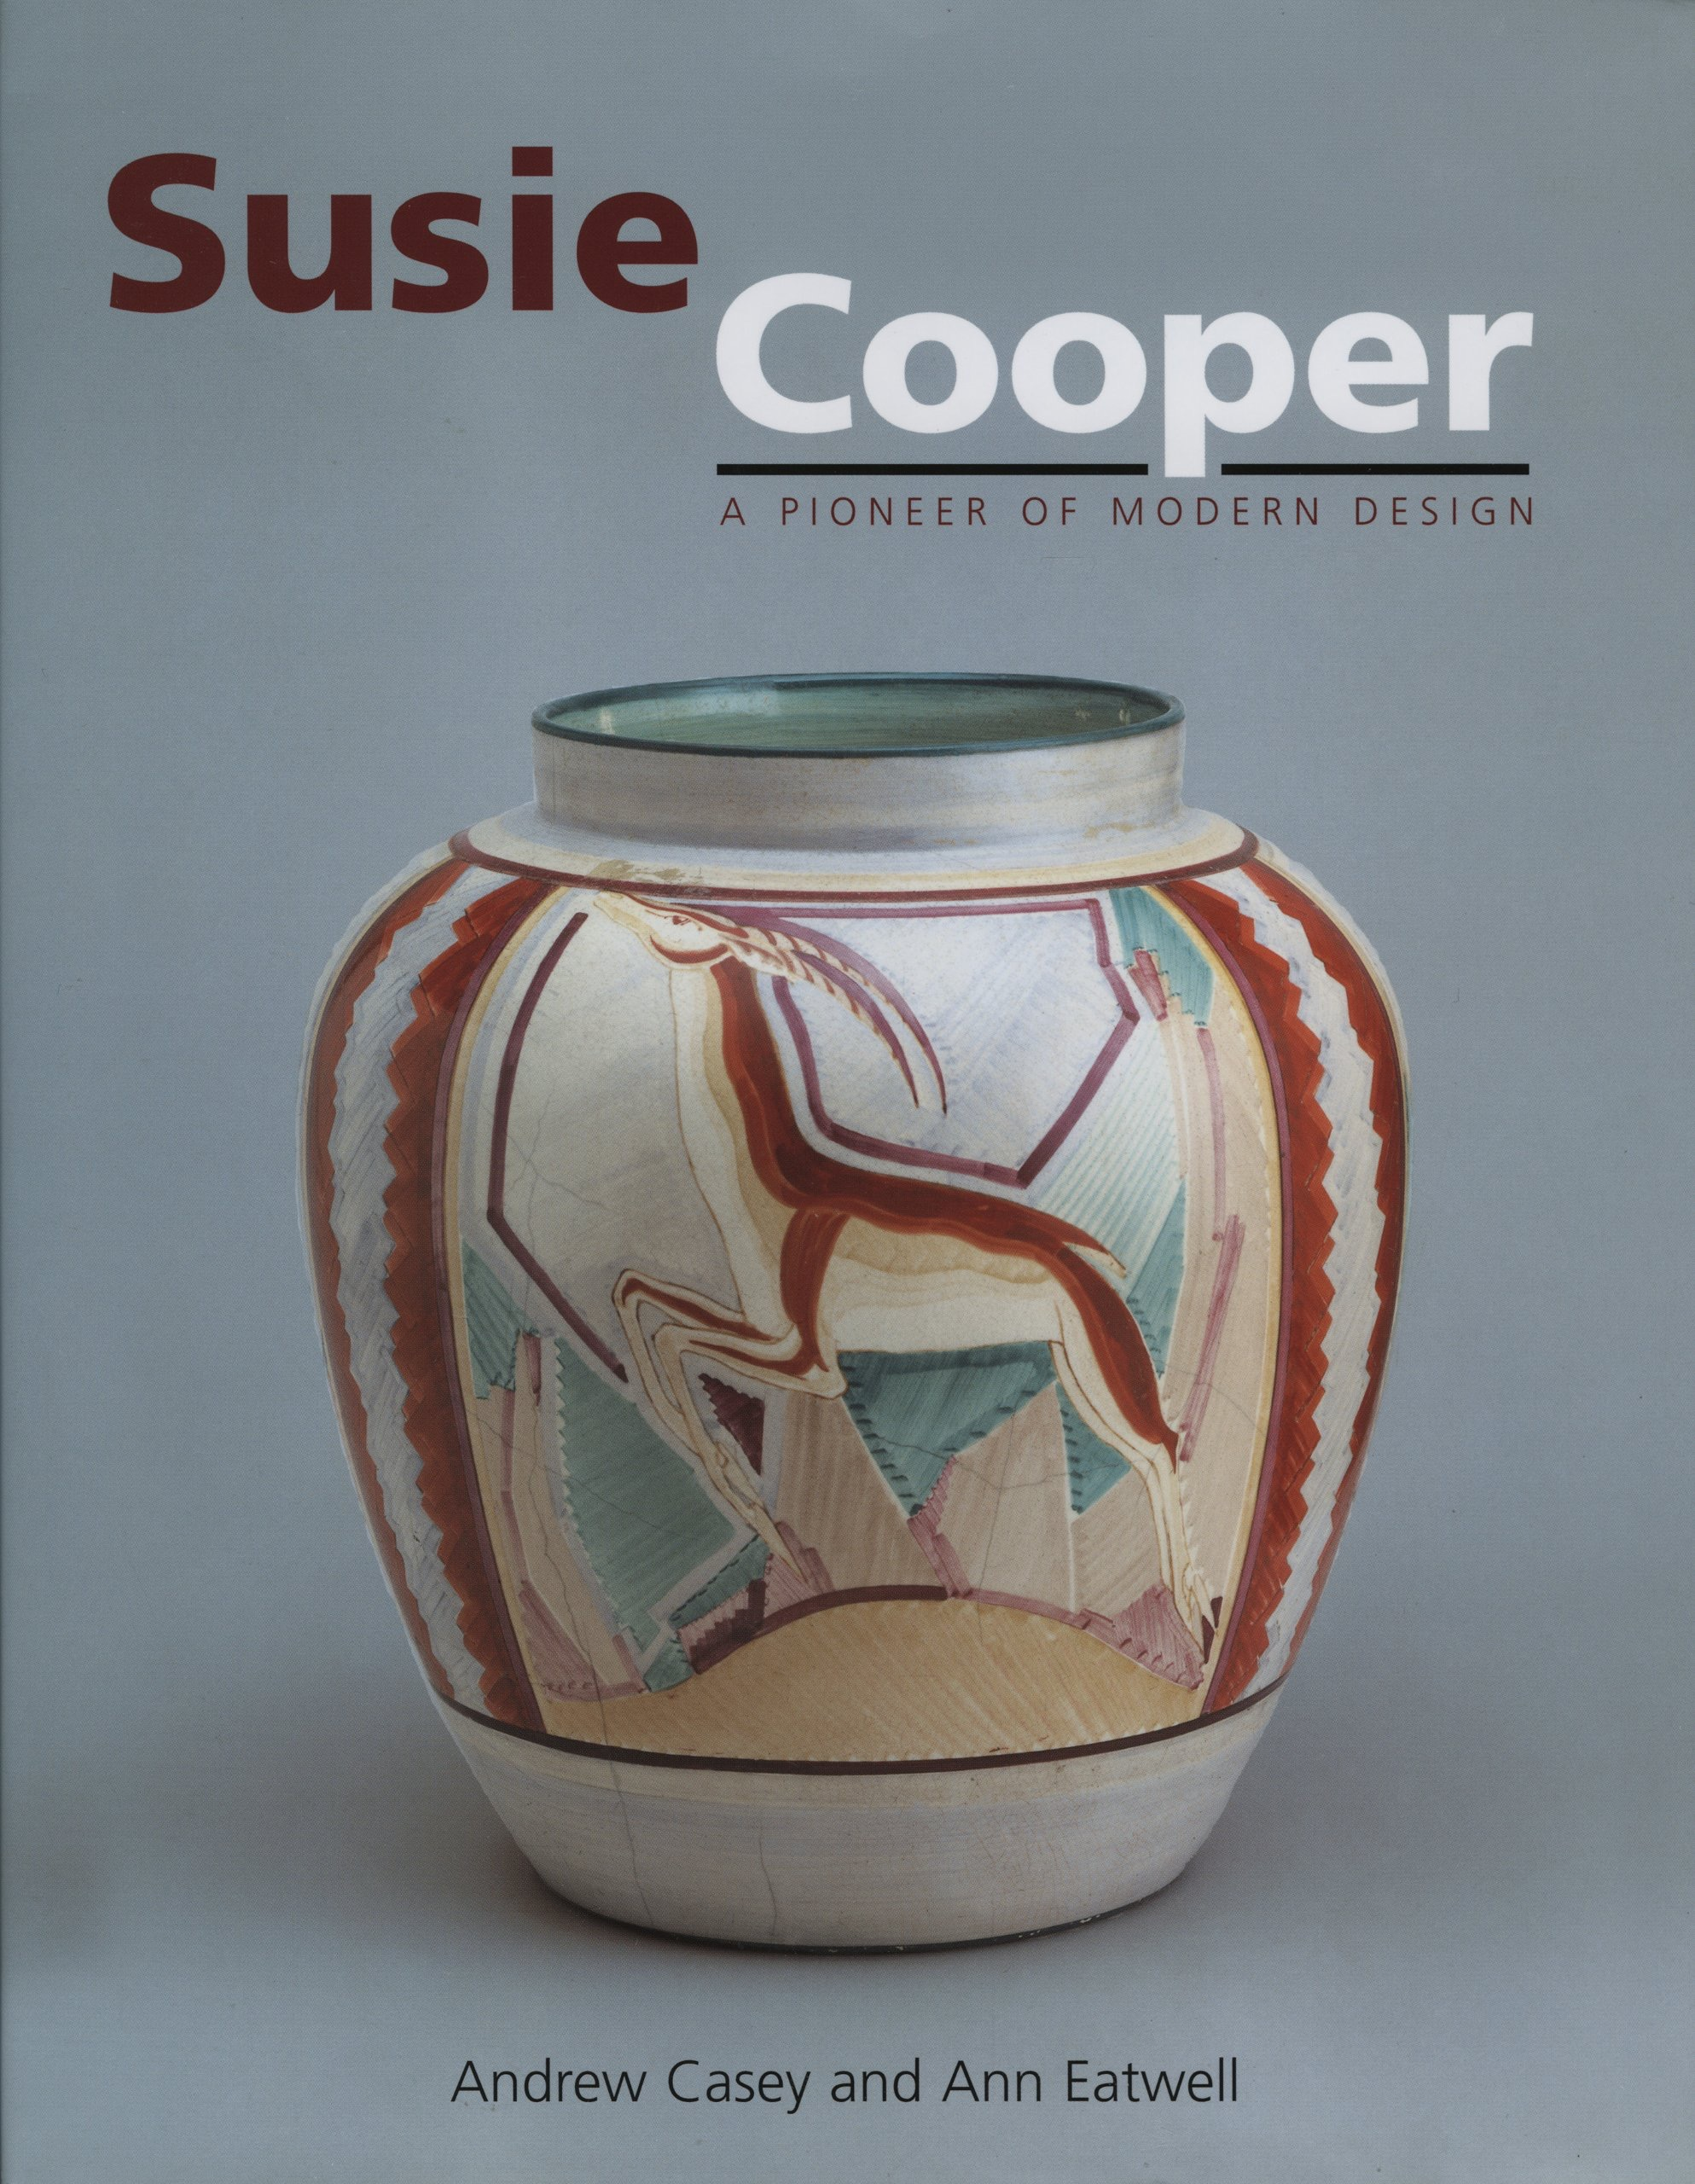 Susie Cooper Productions